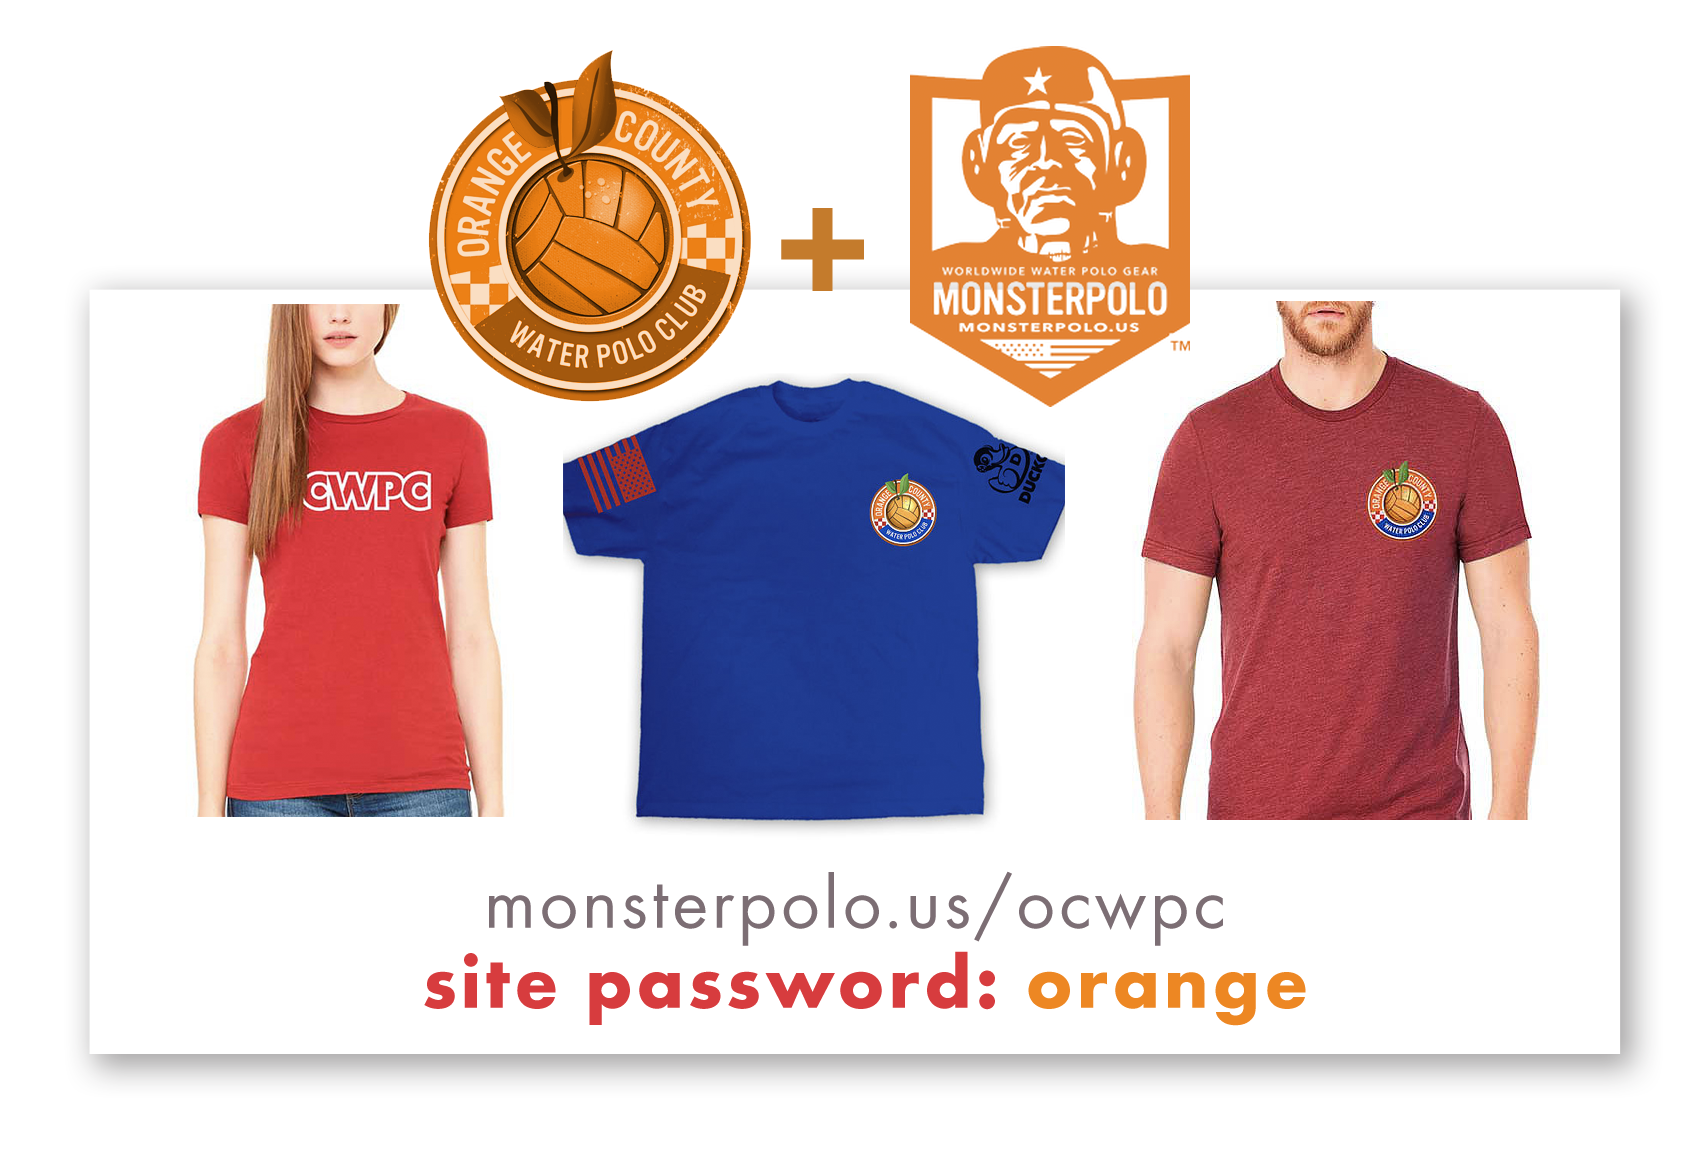 banner store page - monsterpolo + ocpwc - 2018 01 23